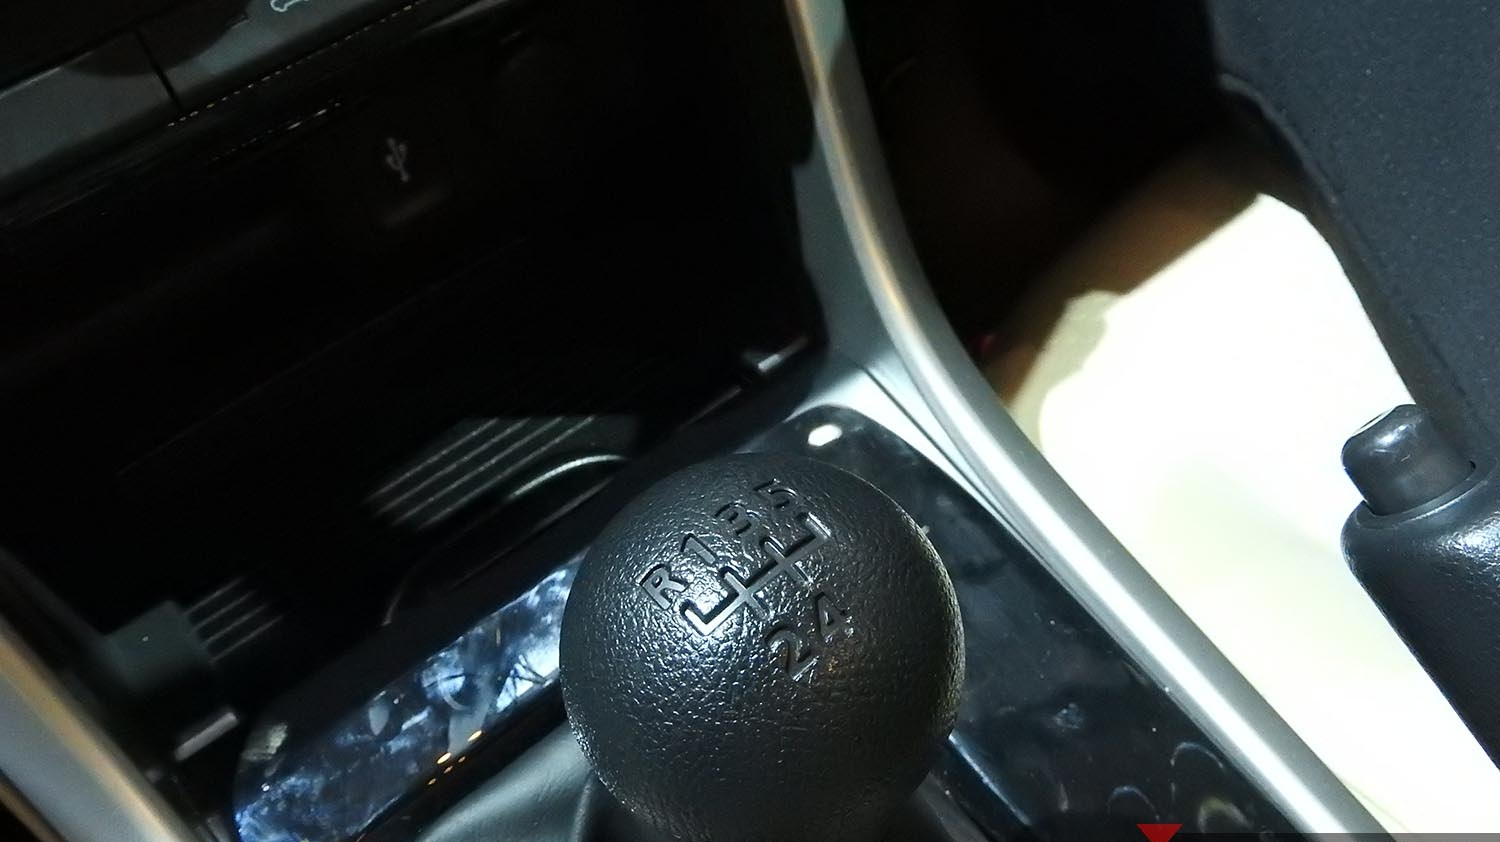 hight resolution of xpander hand brake feels solid and located close to the driver while on his left there are 2 cup holders the center console box capacity is tolerable